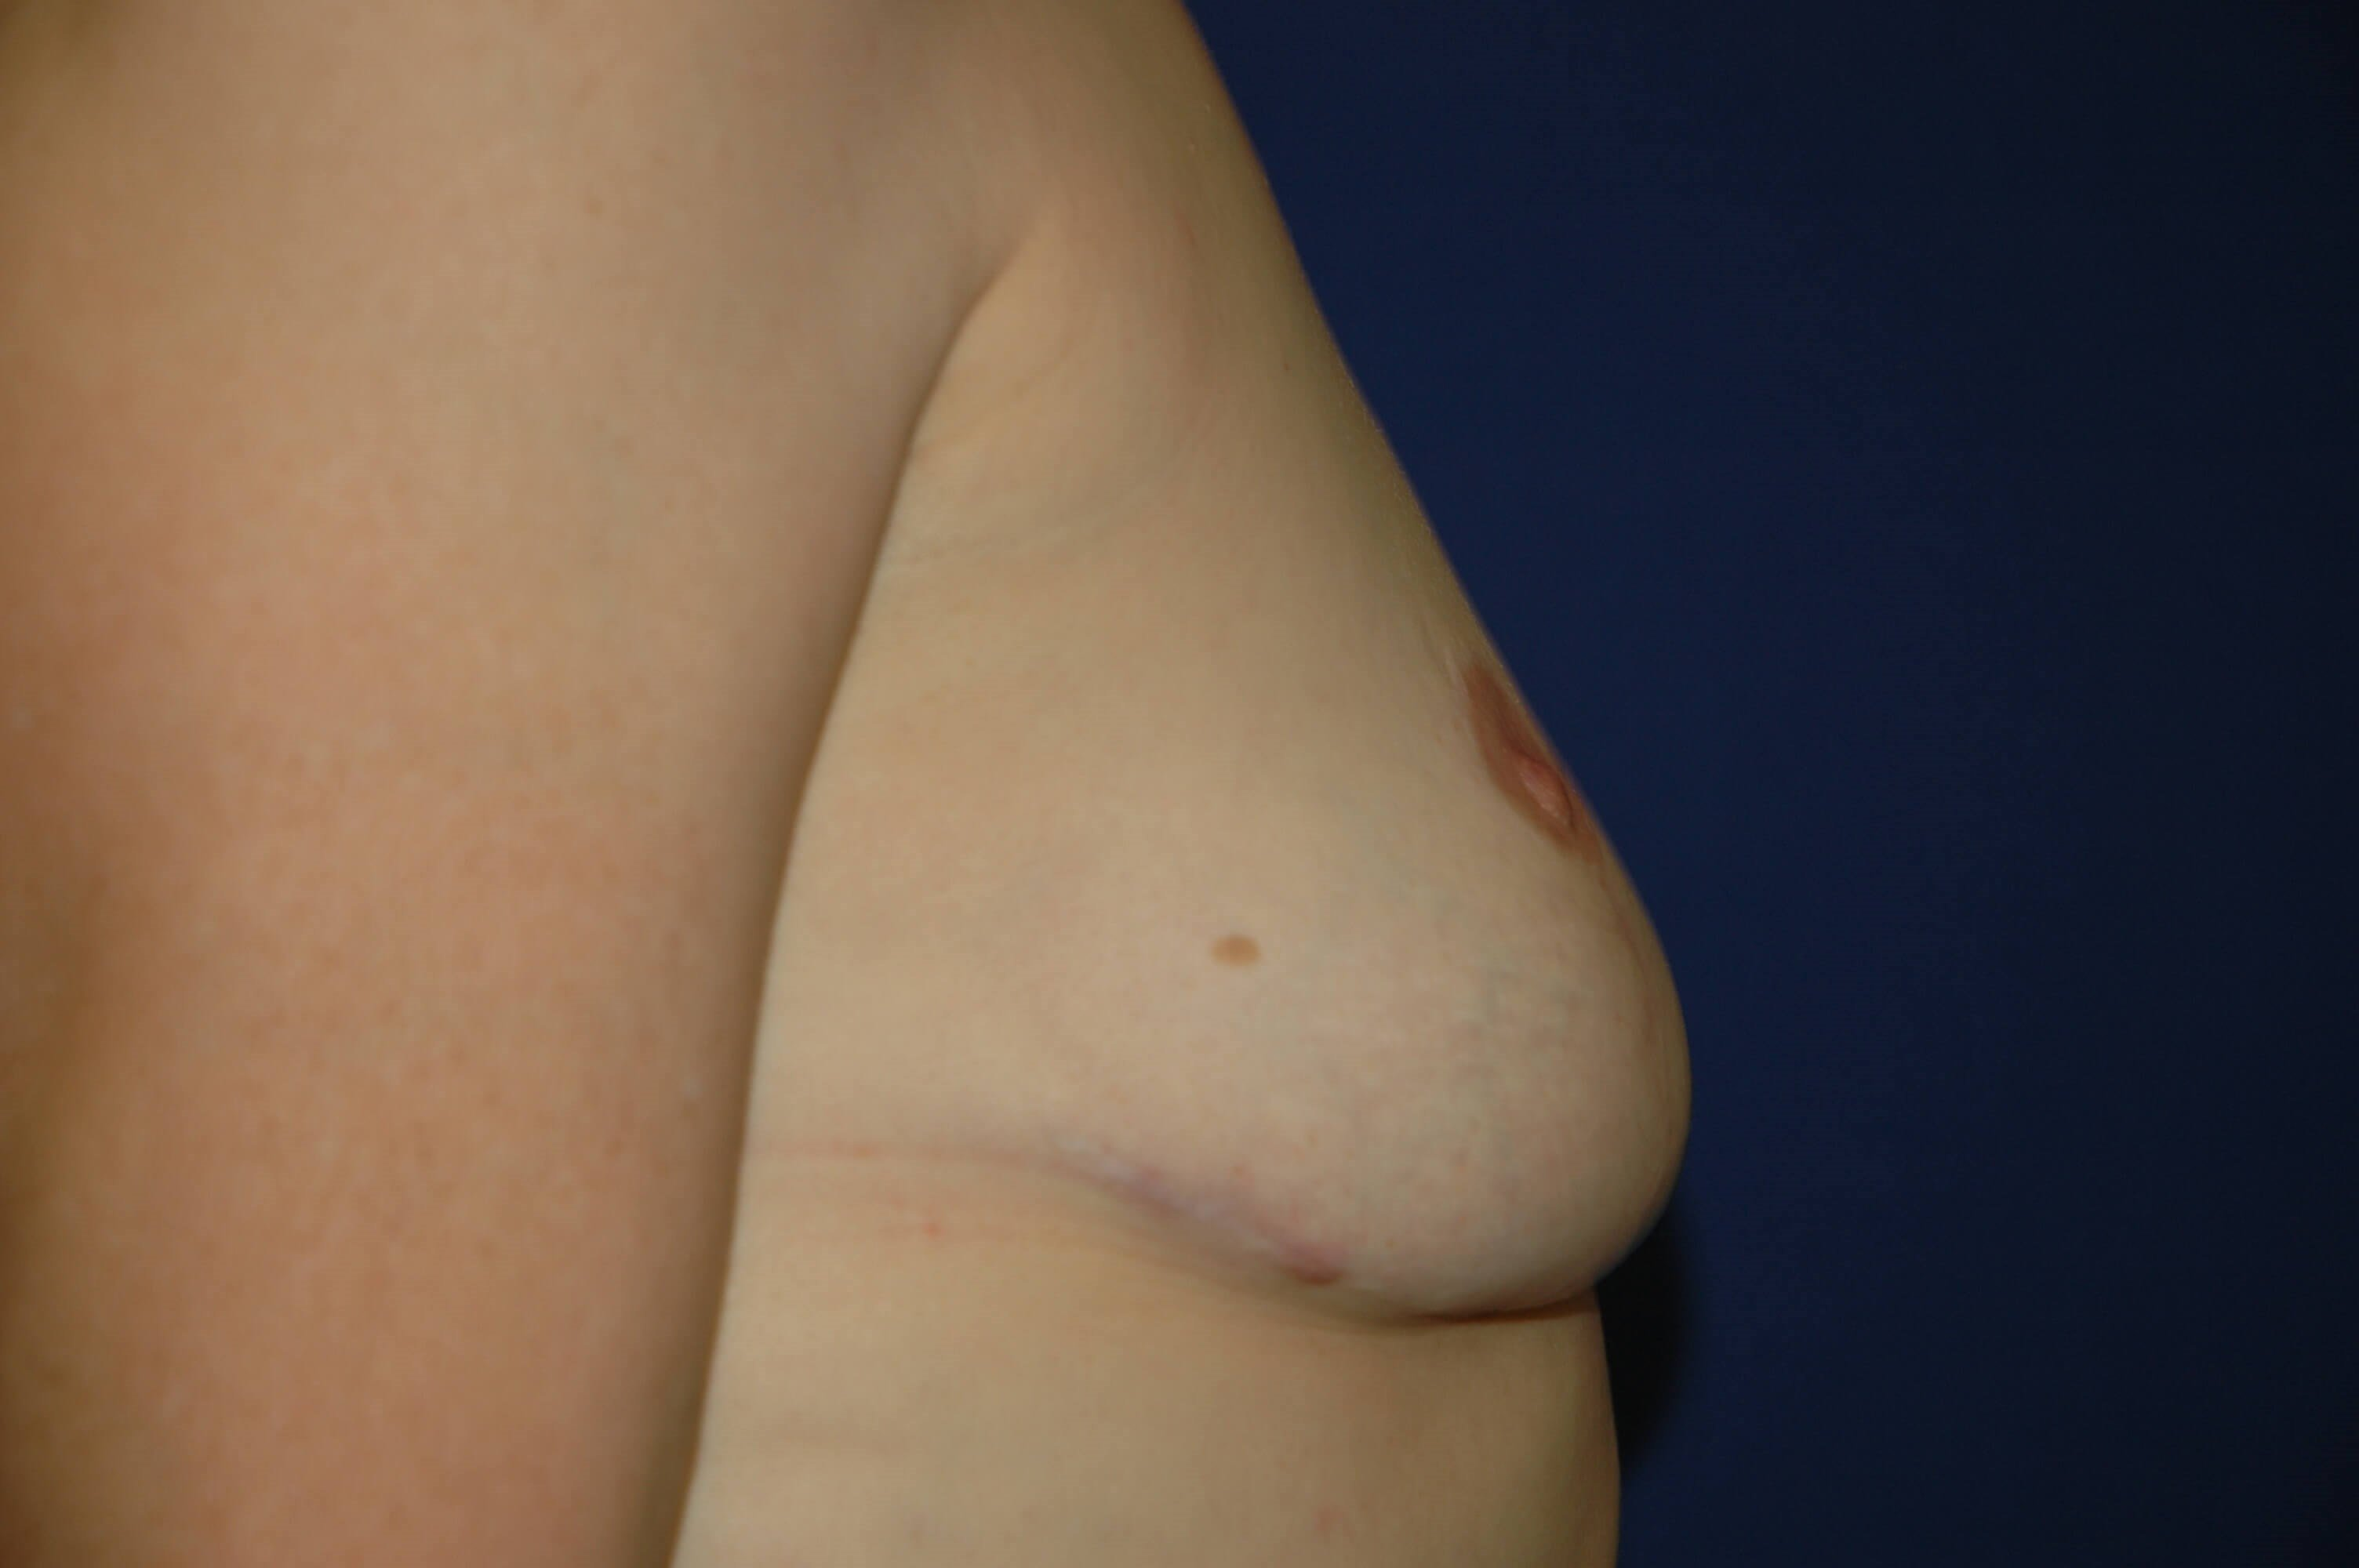 Explantation and Breast Lift After